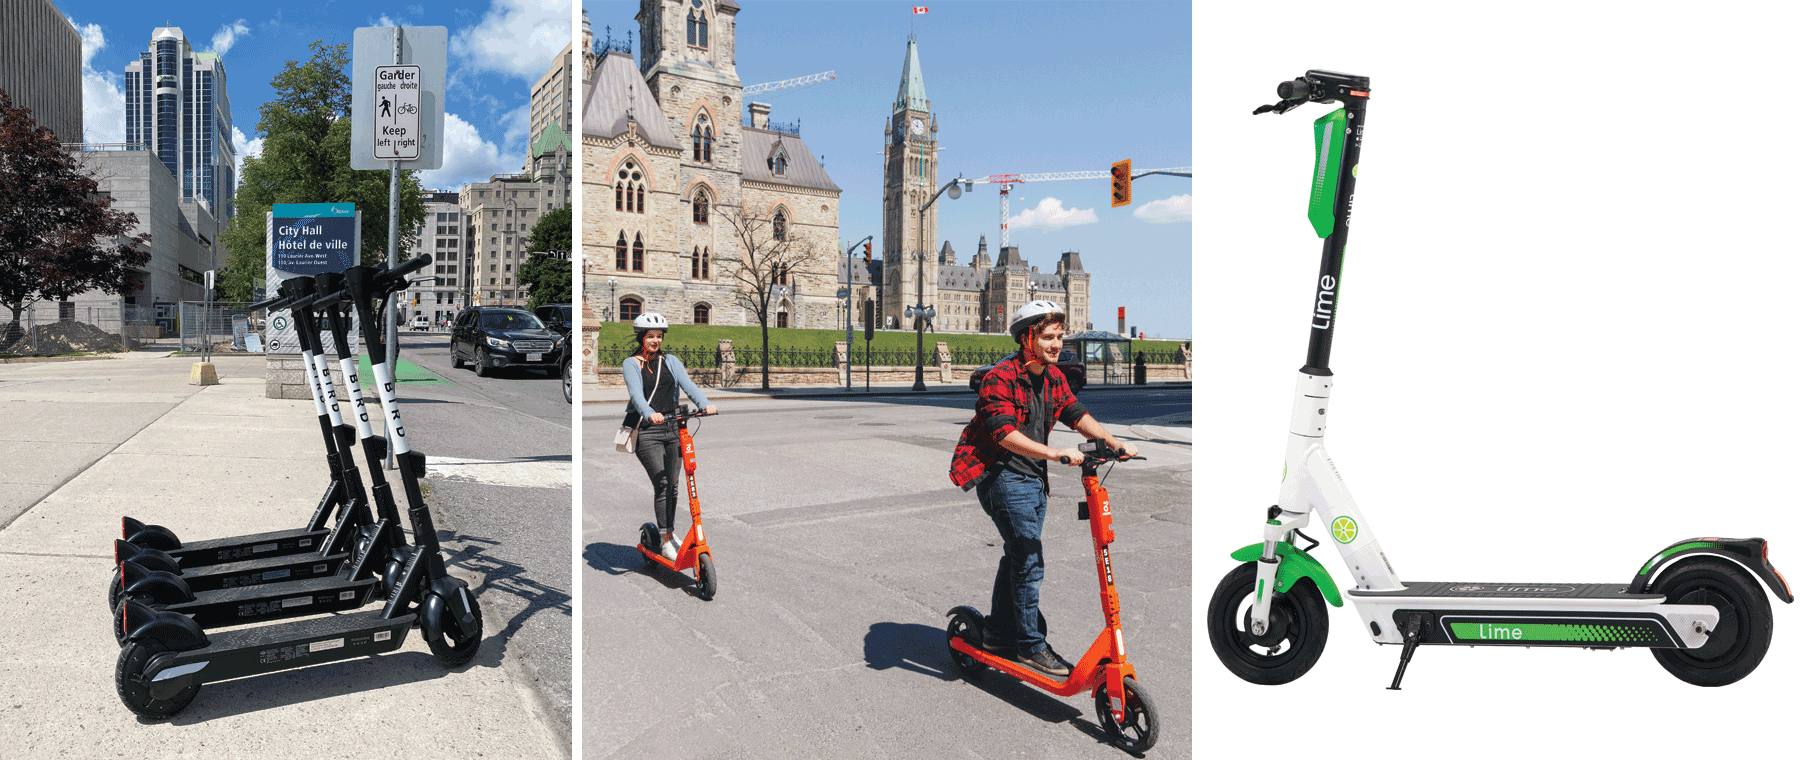 E-scooters — the good, the bad, and the hilarious